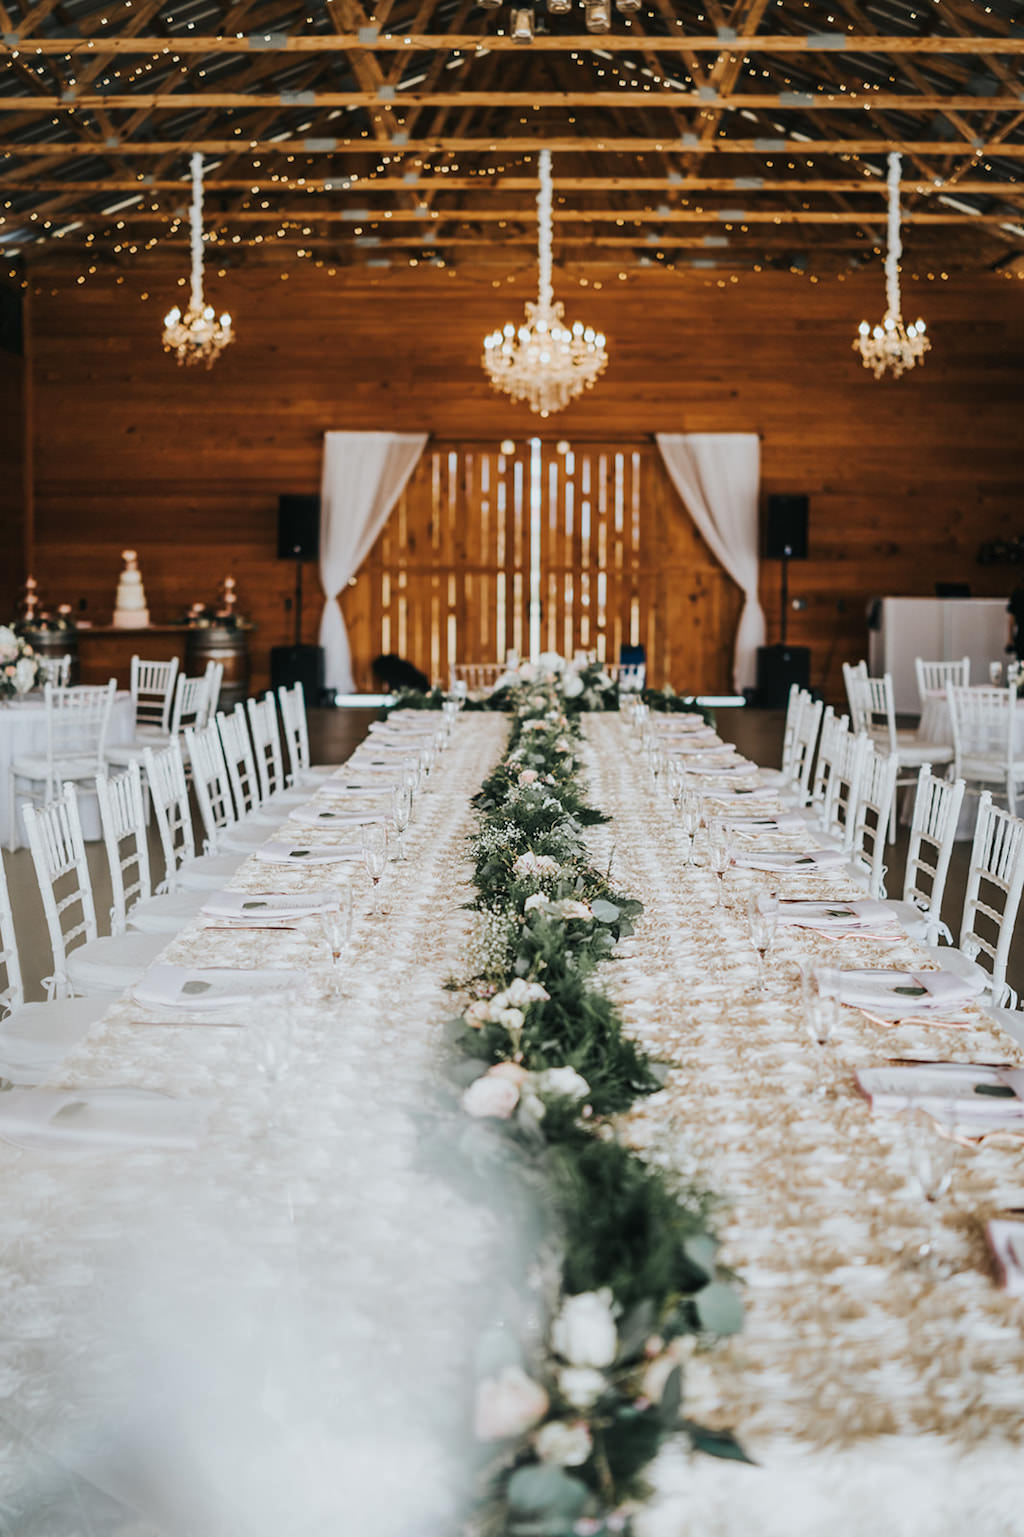 INSTAGRAM Rustic Chic Barn Wedding Reception Decor, Long Feasting Table with Greenery Garland Table Runner with Ivory Roses, White Chiavari Chairs, Crystal Chandeliers   Tampa Wedding Venue Rafter J Ranch   Tampa Bay Wedding Planner Kelly Kennedy Weddings and Events